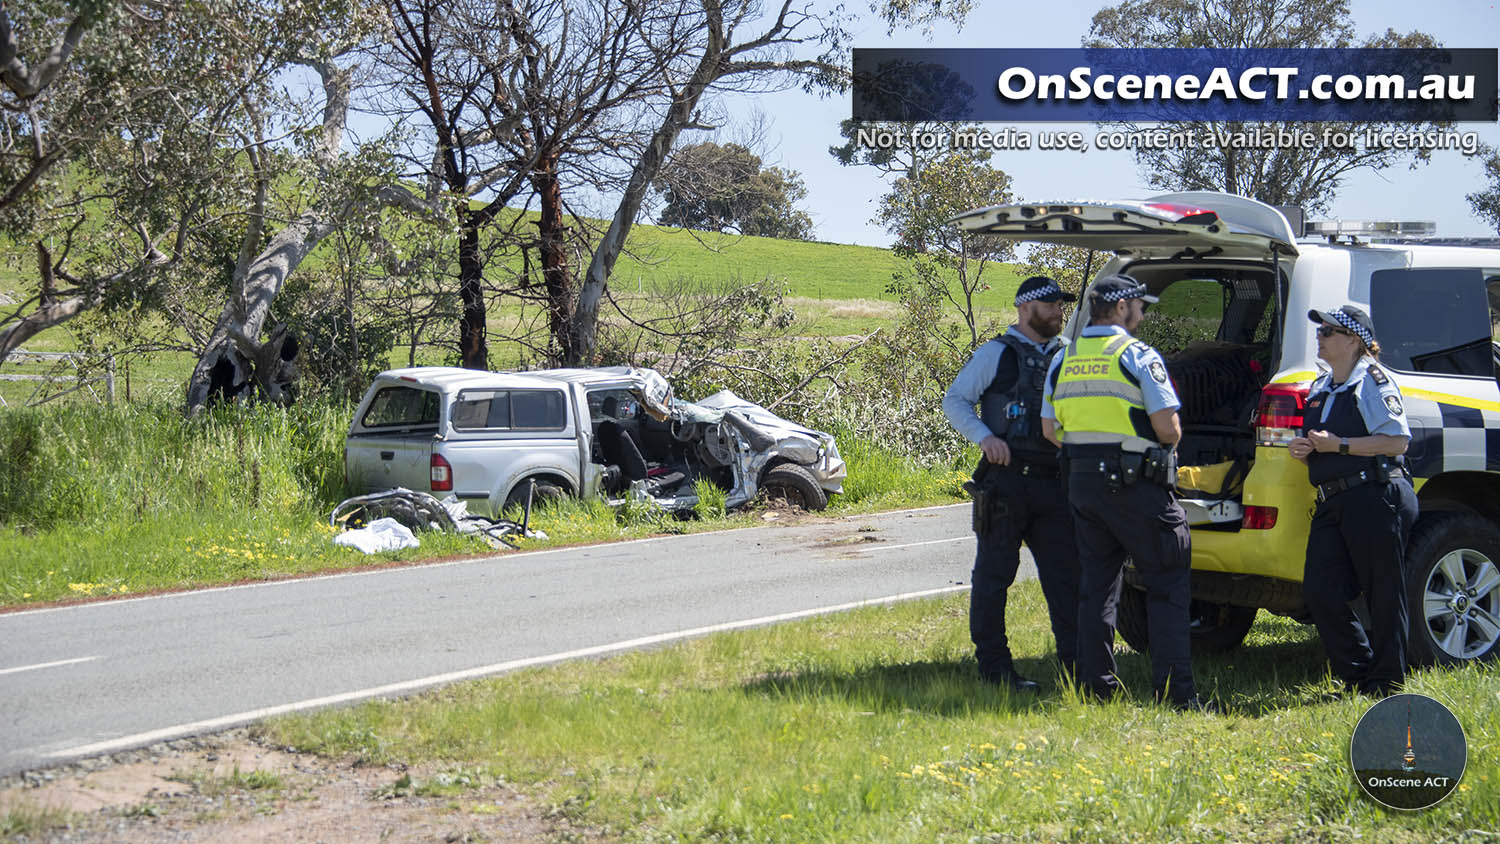 20200922 0800 uriarra crash image 6